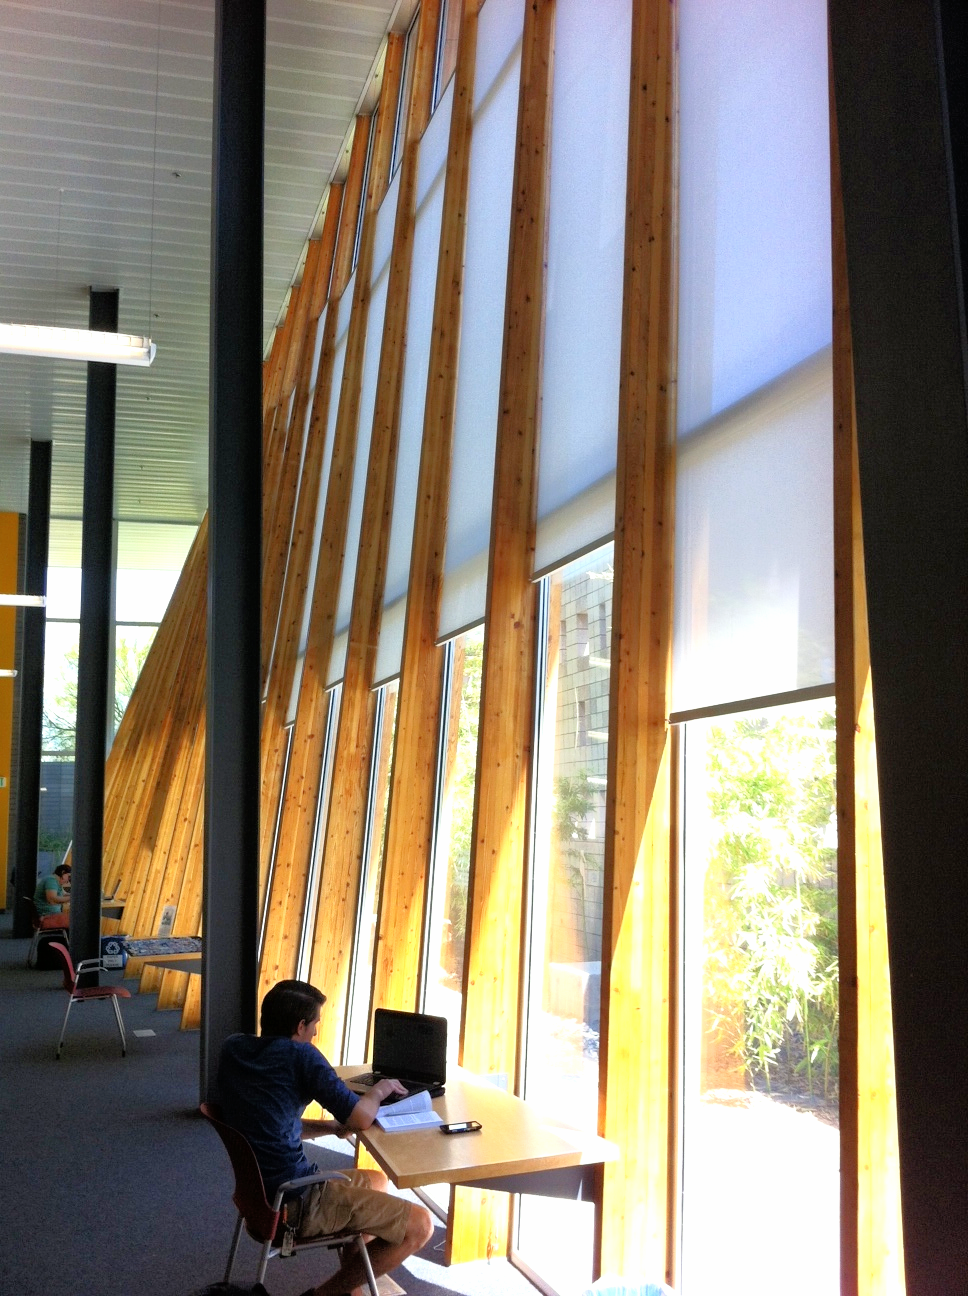 The Poetry Center's indoor/outdoor working spaces are separated by an intriguing two-story slanted wood and glass wall.